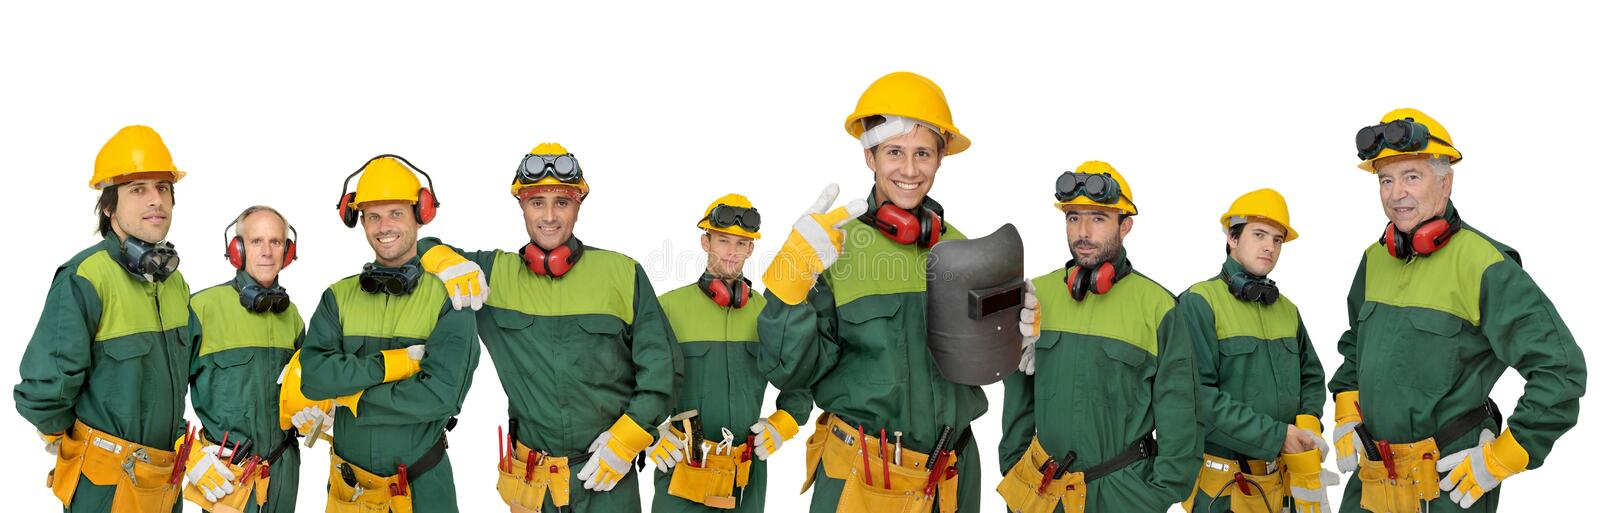 Workers team royalty free stock photos